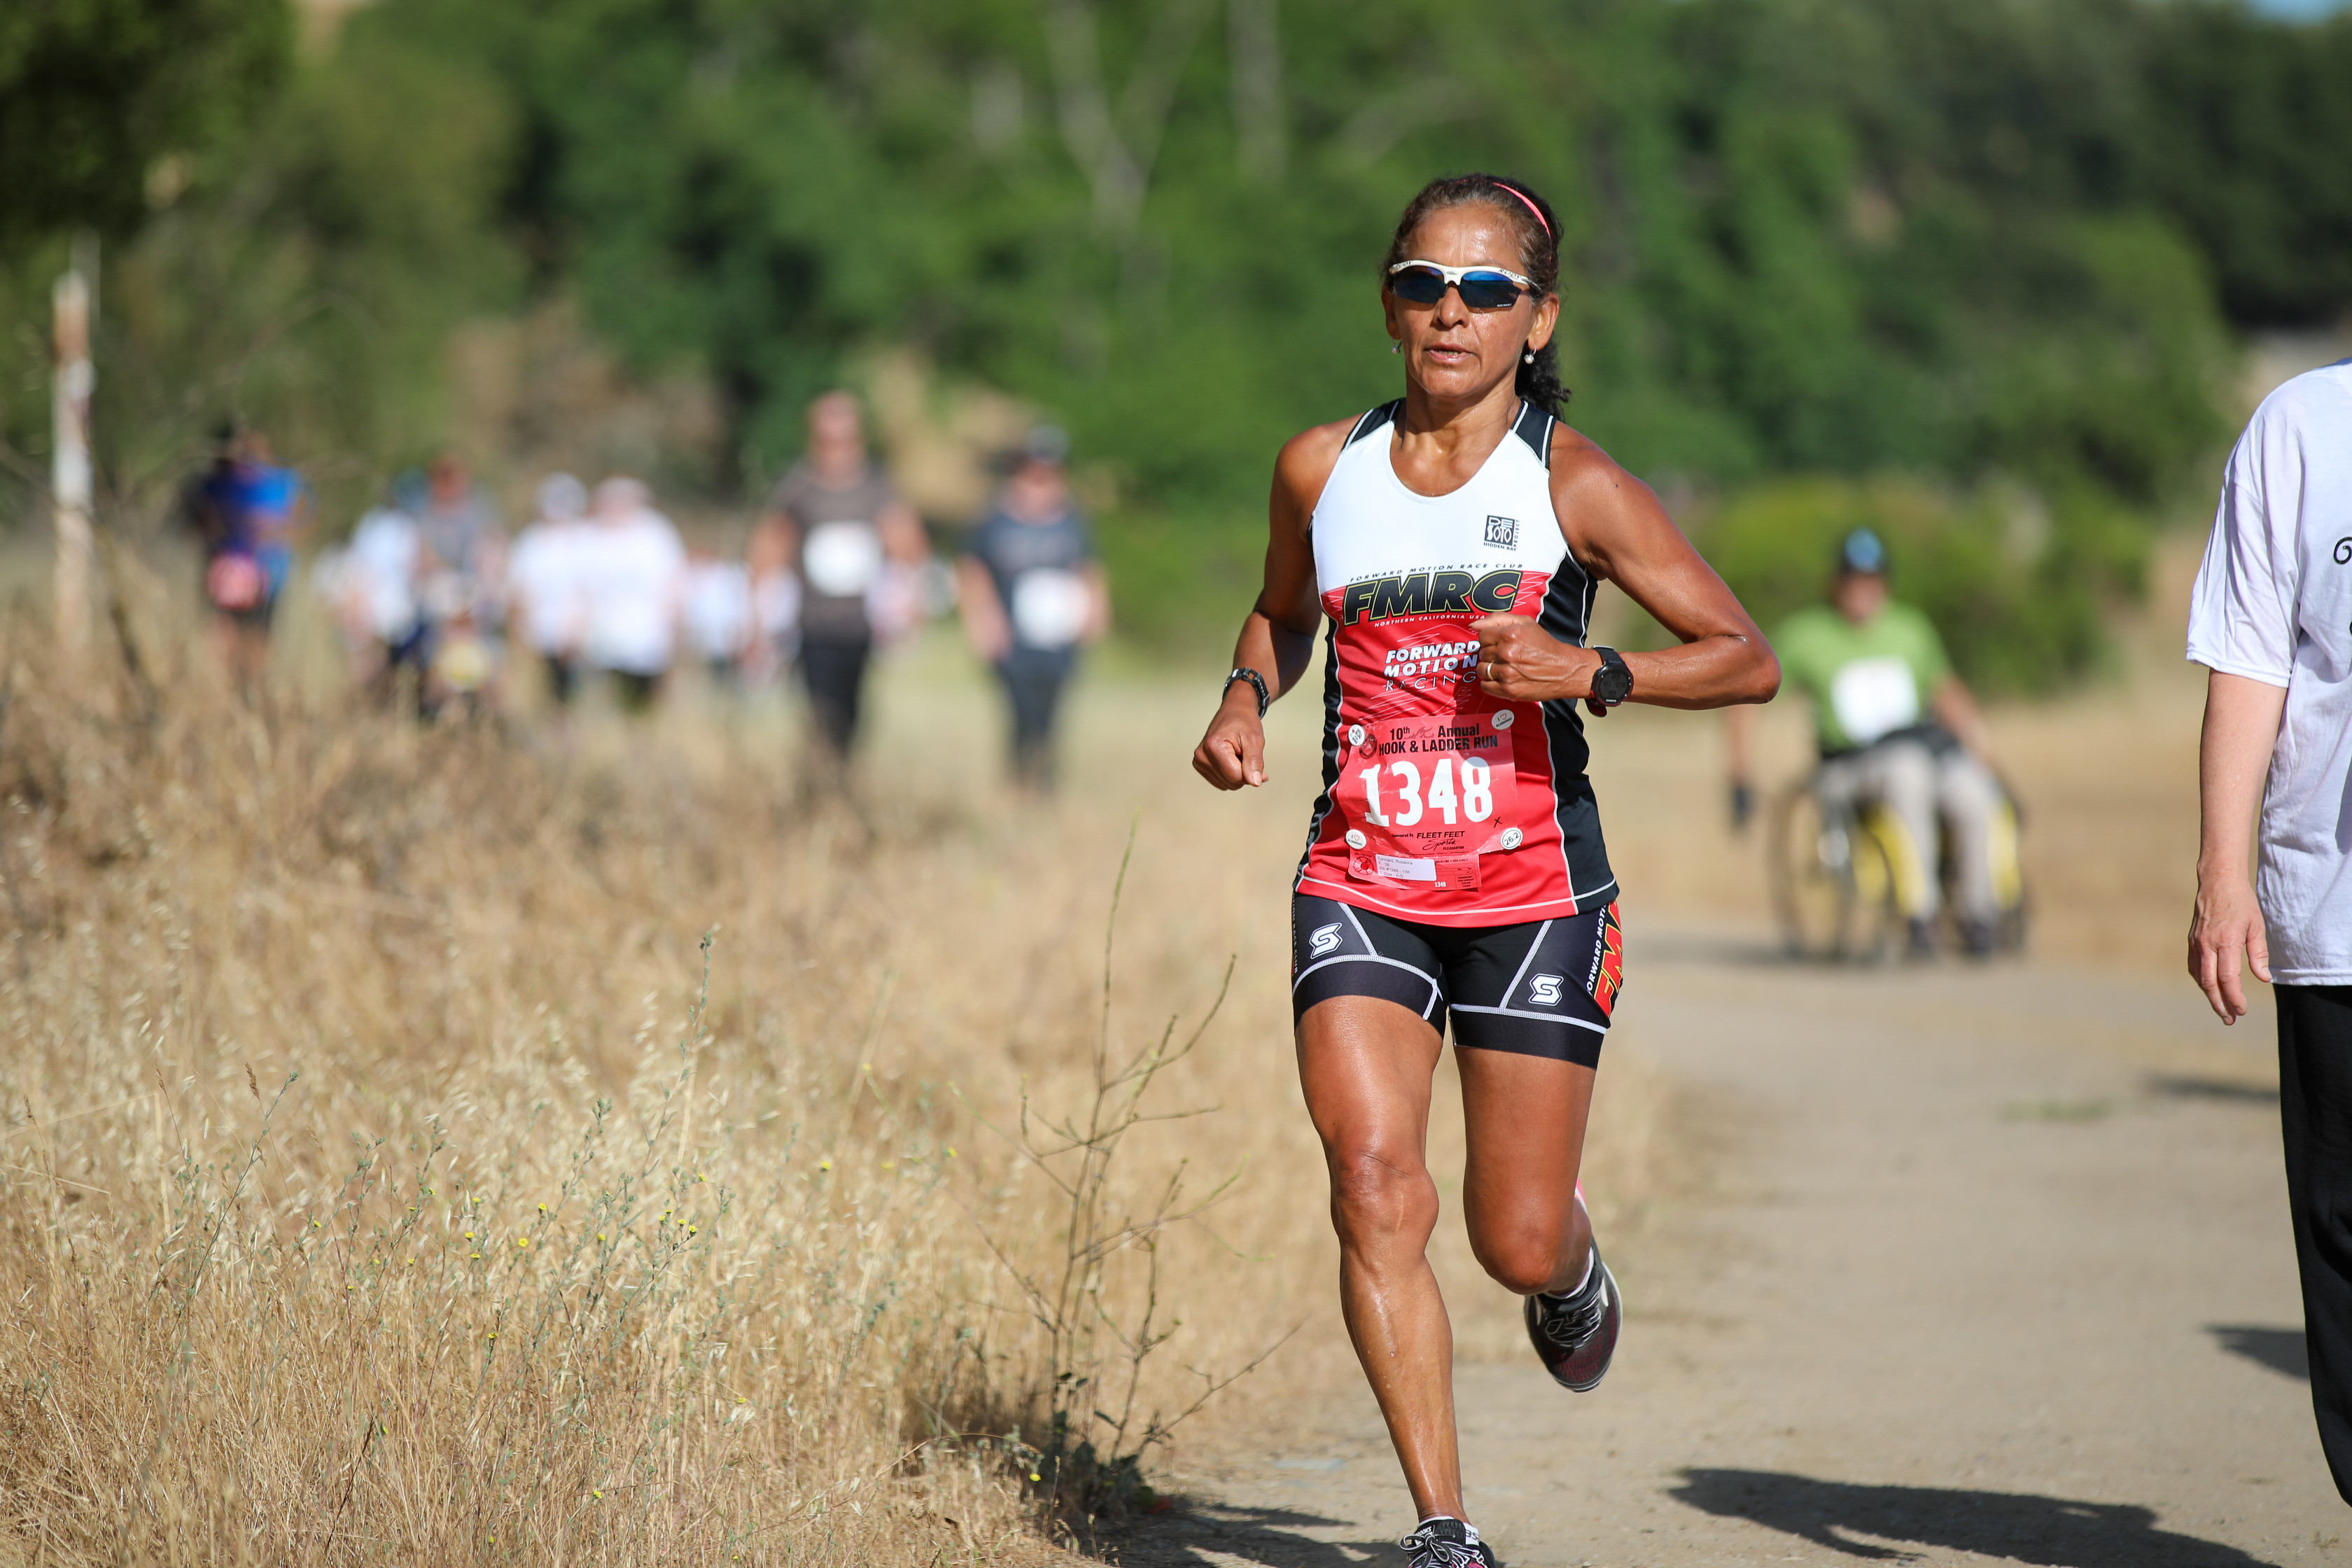 Global Run Challenge Profile: Rosaura Tennant says running is like a vitamin or medicine done daily